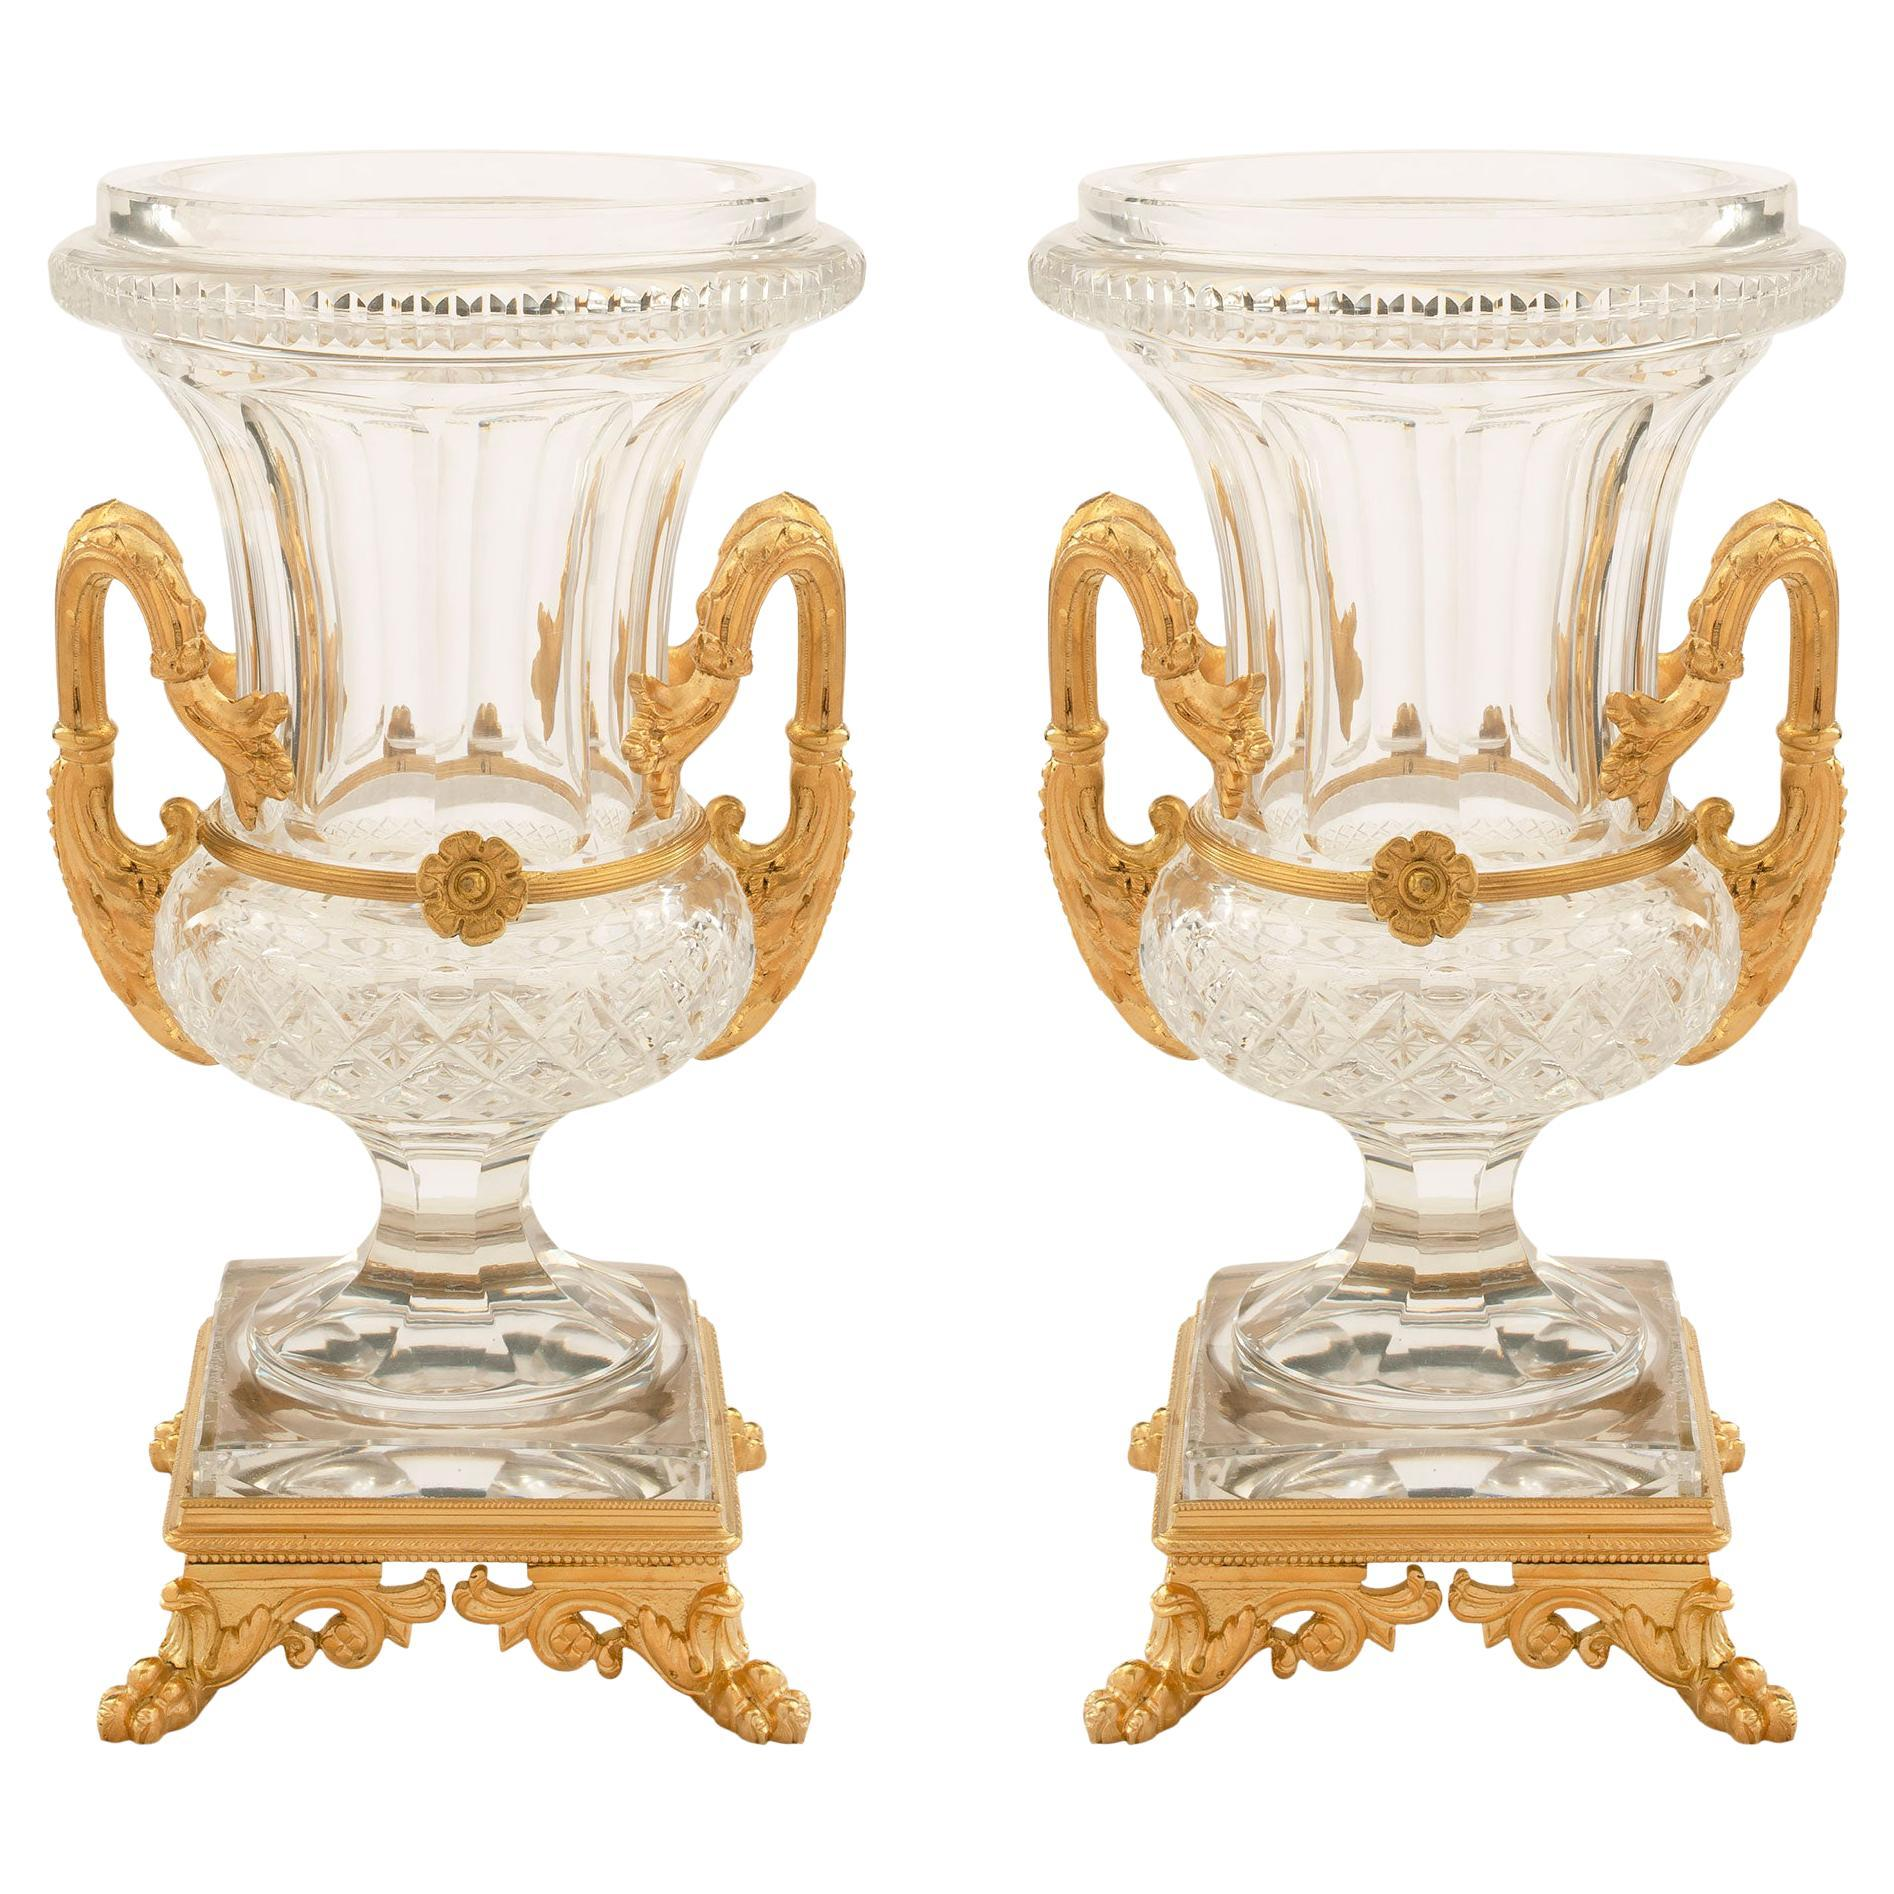 Pair of French 19th Century Louis XVI Style Baccarat Crystal and Ormolu Vases